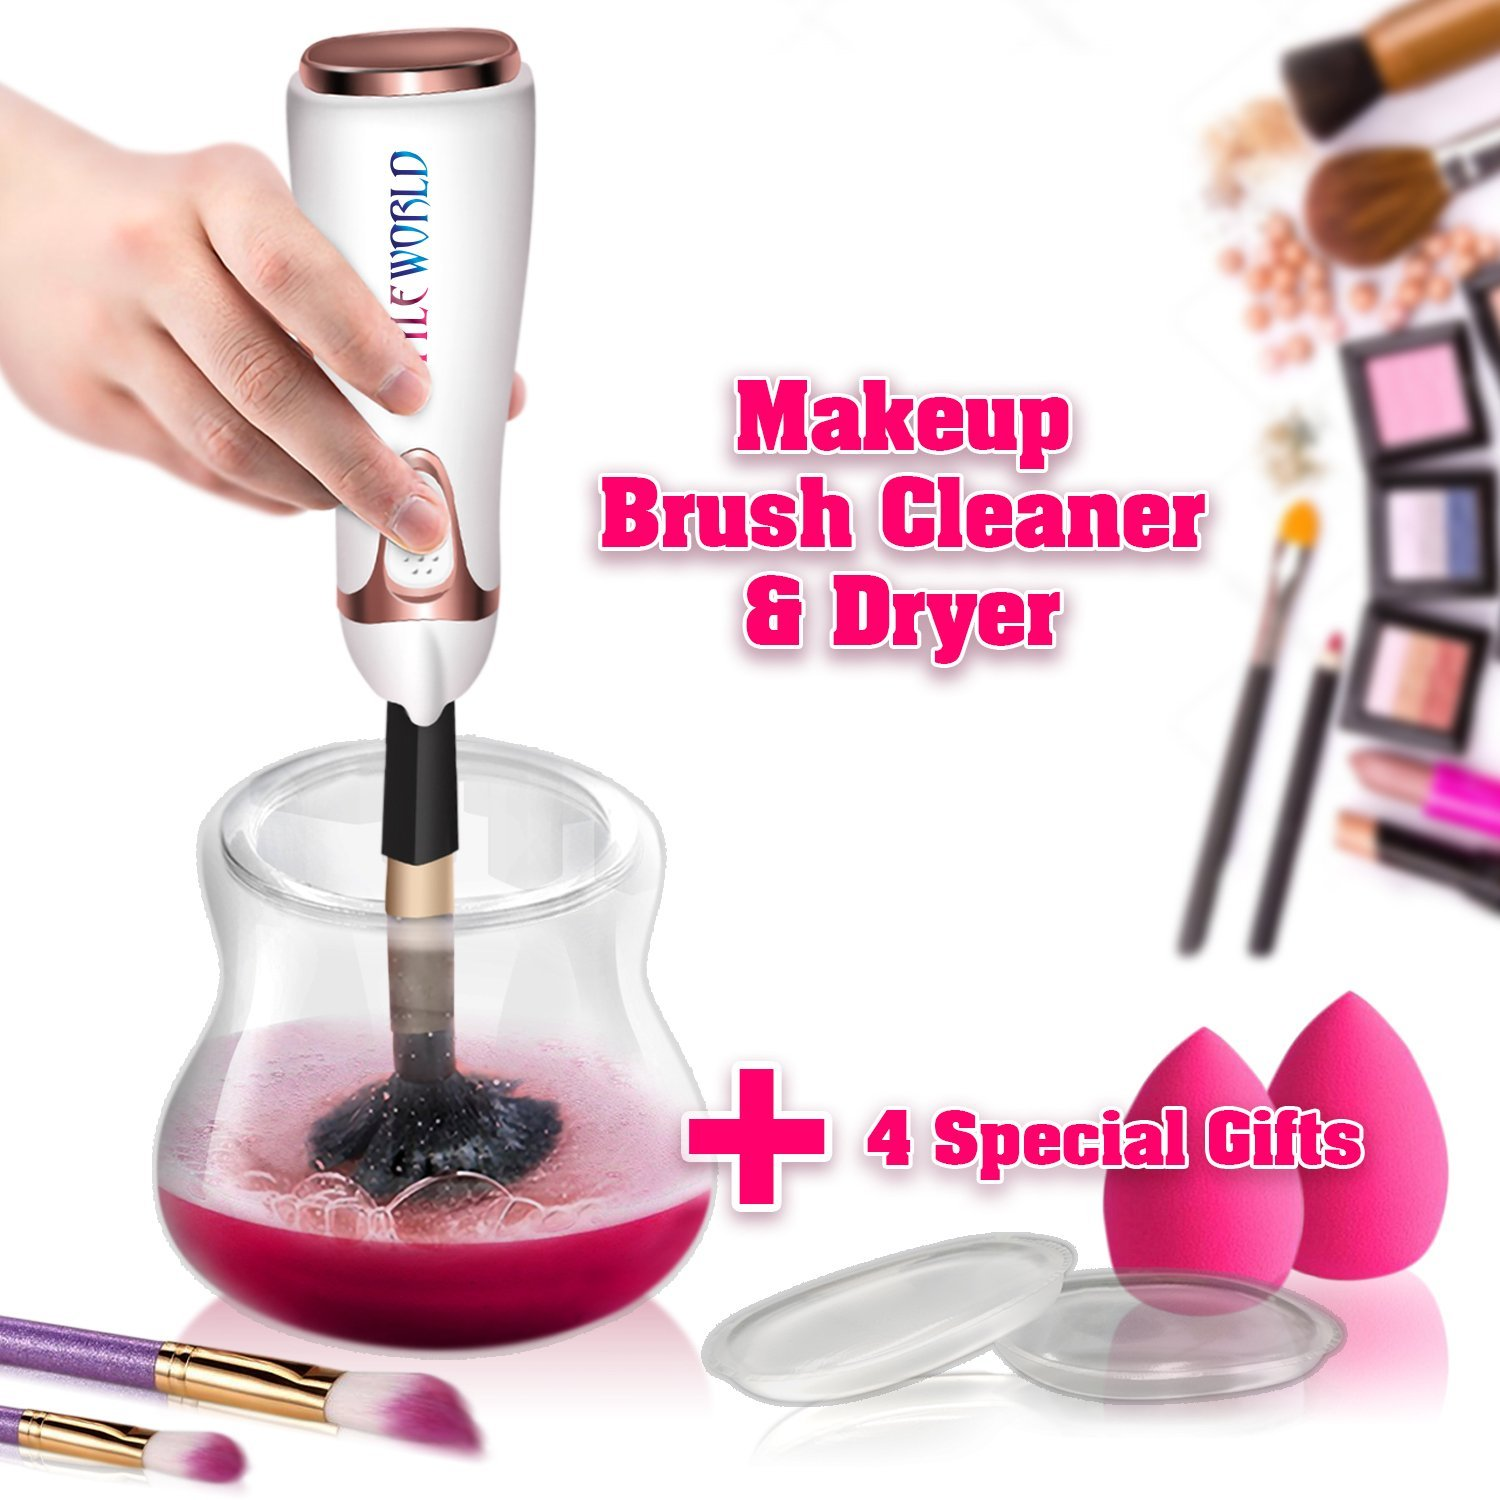 Makeup Brush Cleaner and Dryer Spinner Machine,Upgraded Automatic Electric Spinning Makeup Brush Cleaner, Cleans and Dries Makeup Brushes in Seconds for All Size Brushes+4x(Makeup Sponge and Silicone)